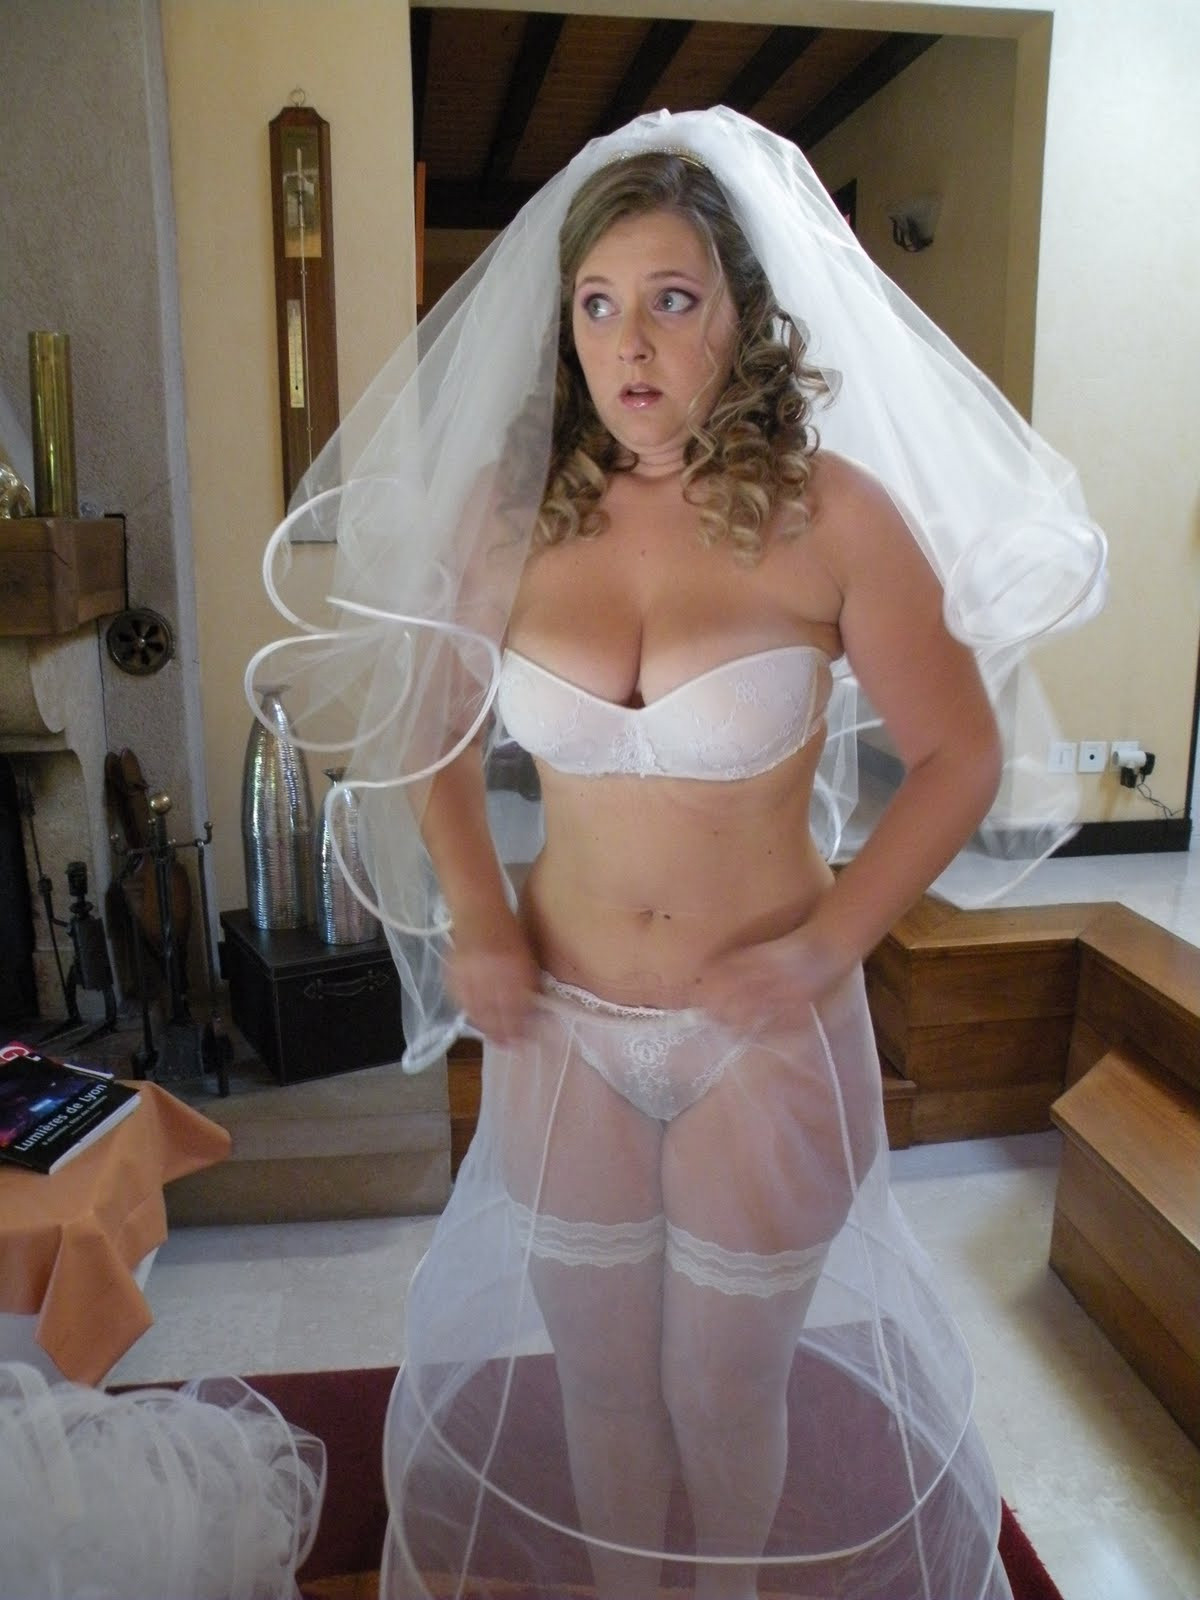 Wedding Skandall Sexy And Nude - Voyeurpapa-4227